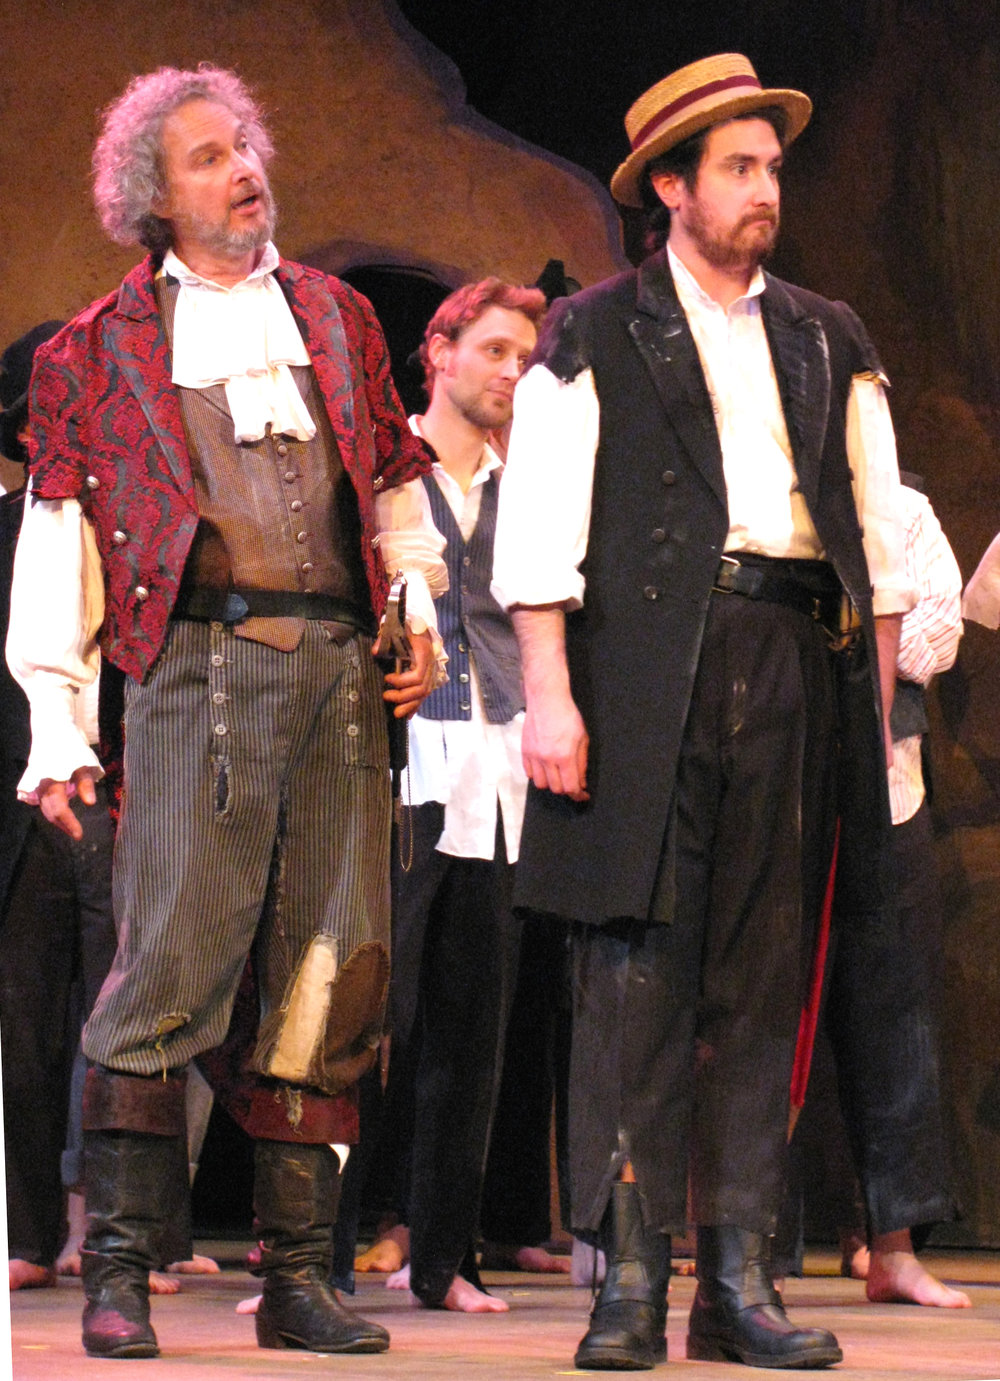 pirates-of-penzance_8297118009_o.jpg